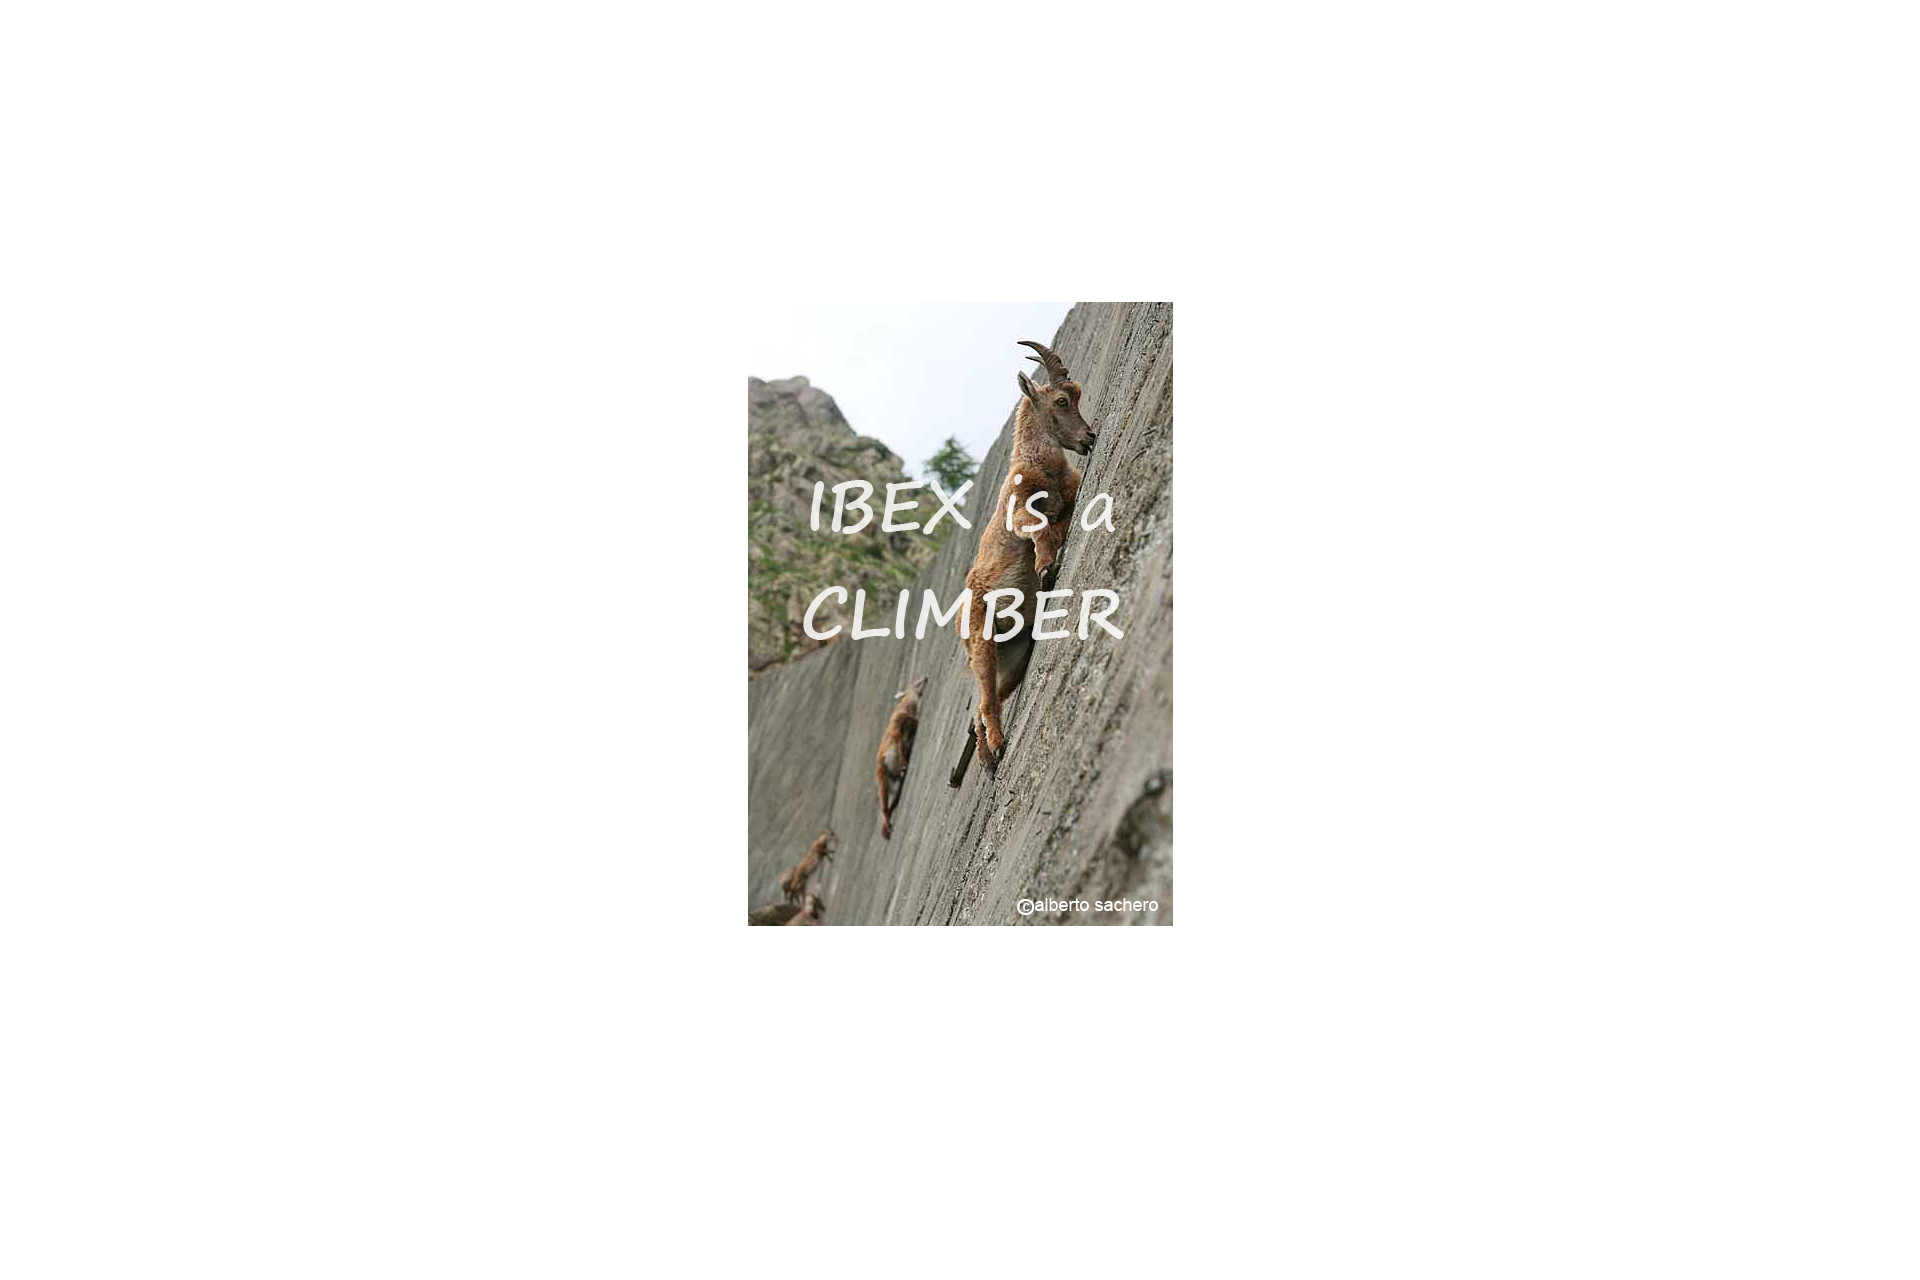 Ibex is a climber